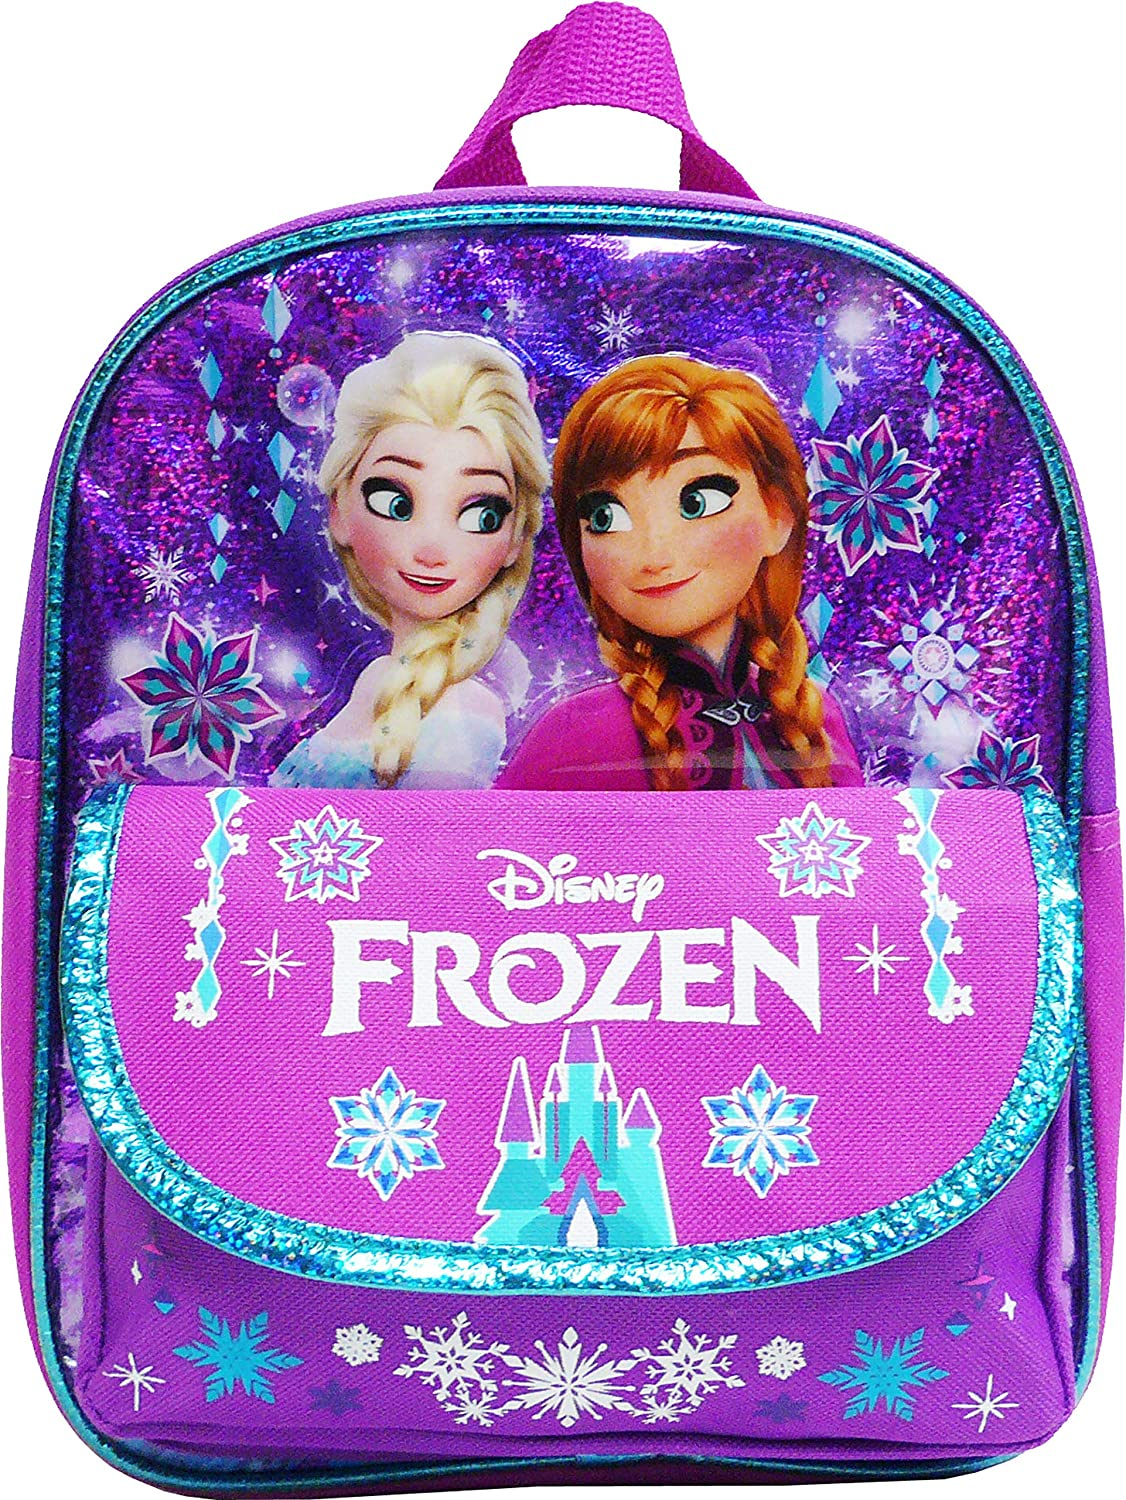 Kids Toddler Baby Cute Character Frozen Olaf Doll Safety Harness Backpack